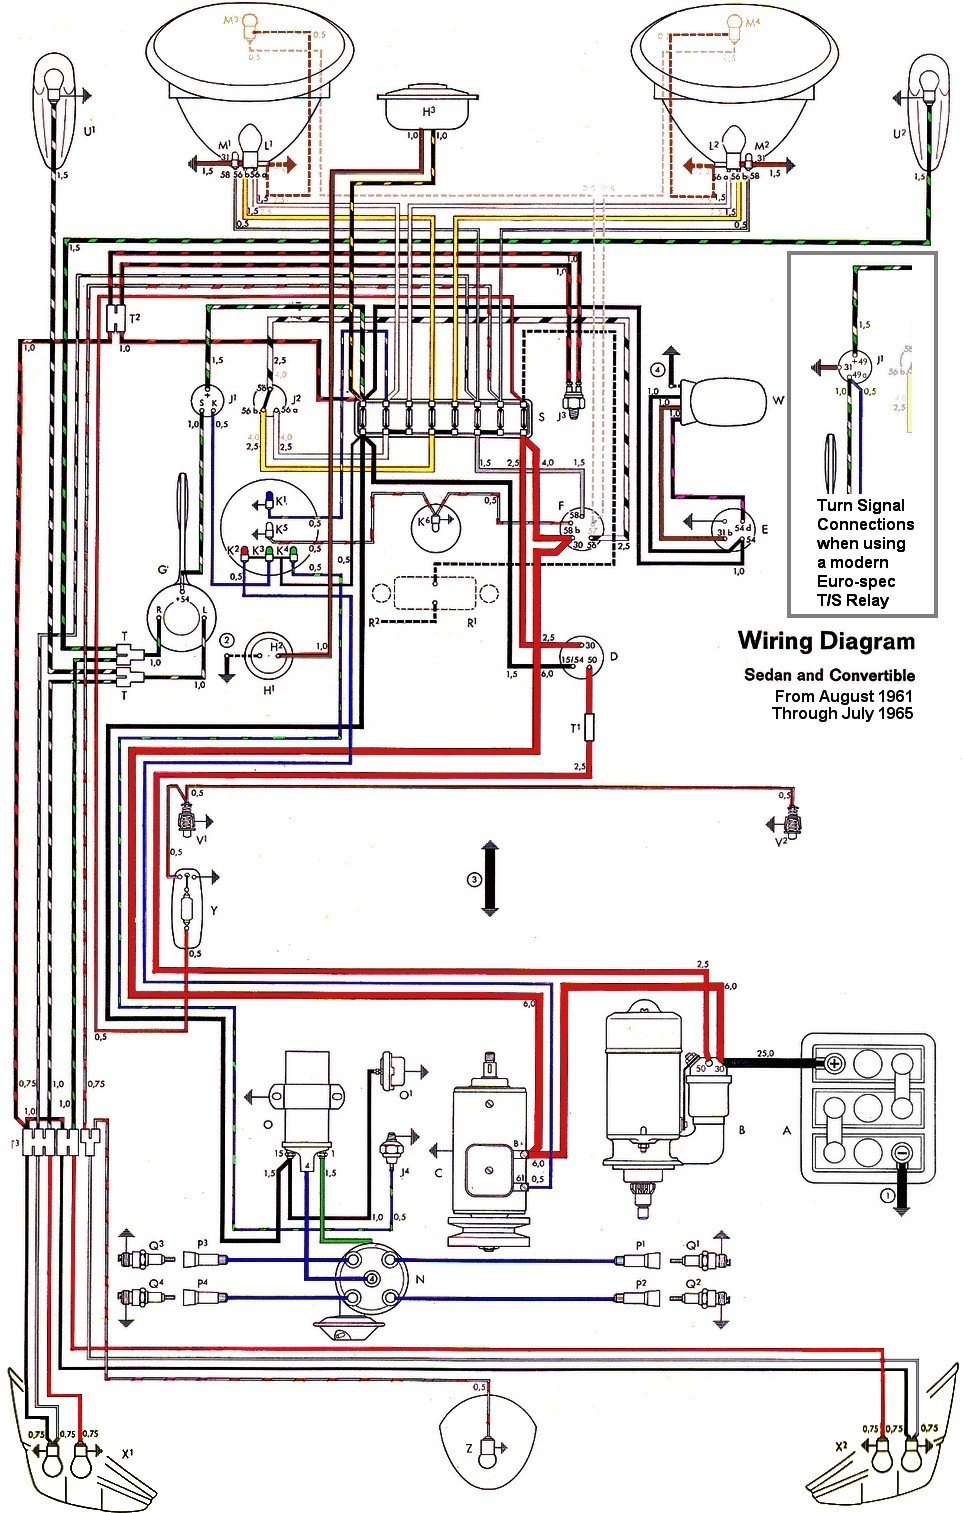 bug_62 65withinset thesamba com type 1 wiring diagrams vw bug wiring diagram at arjmand.co